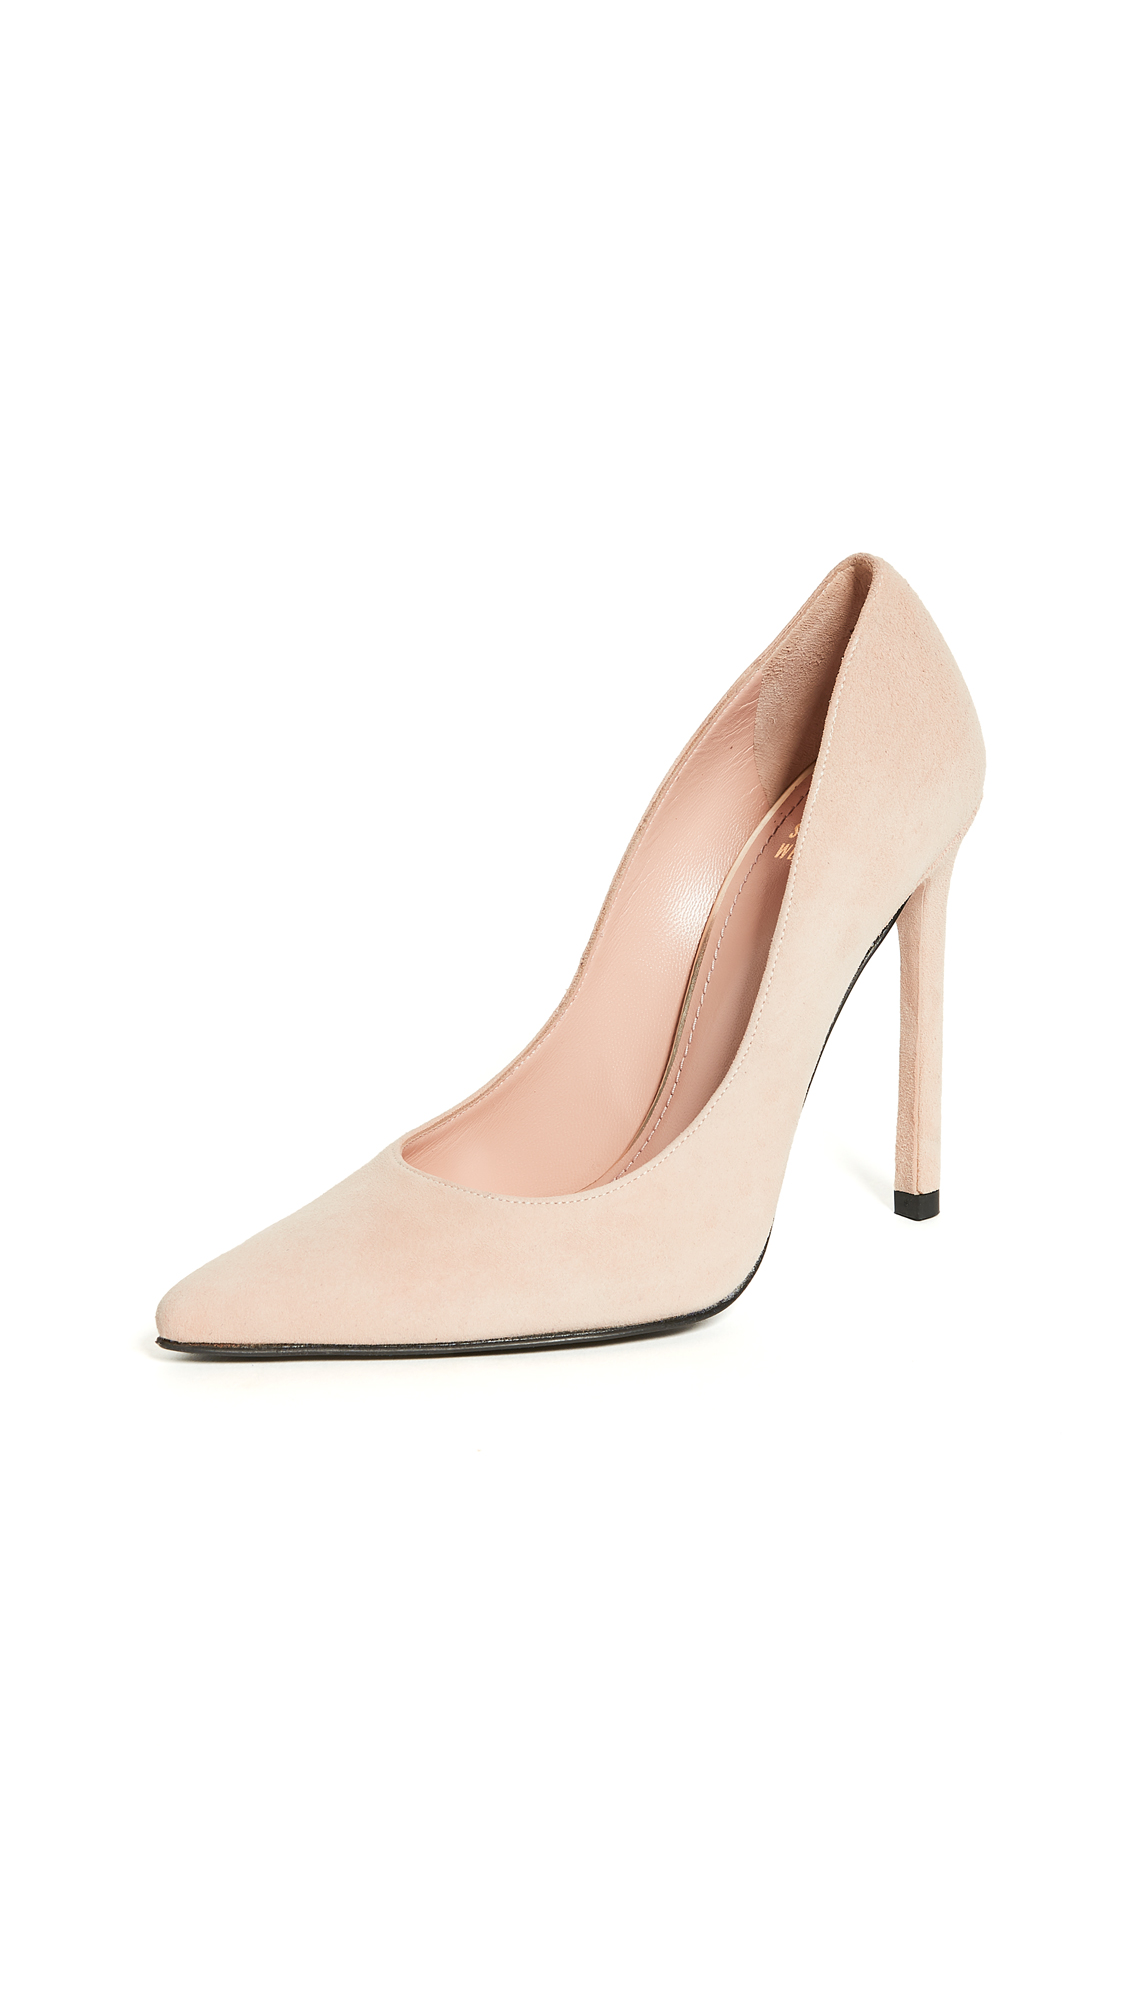 Stuart Weitzman Queen 110mm Suede Pumps - Bisque